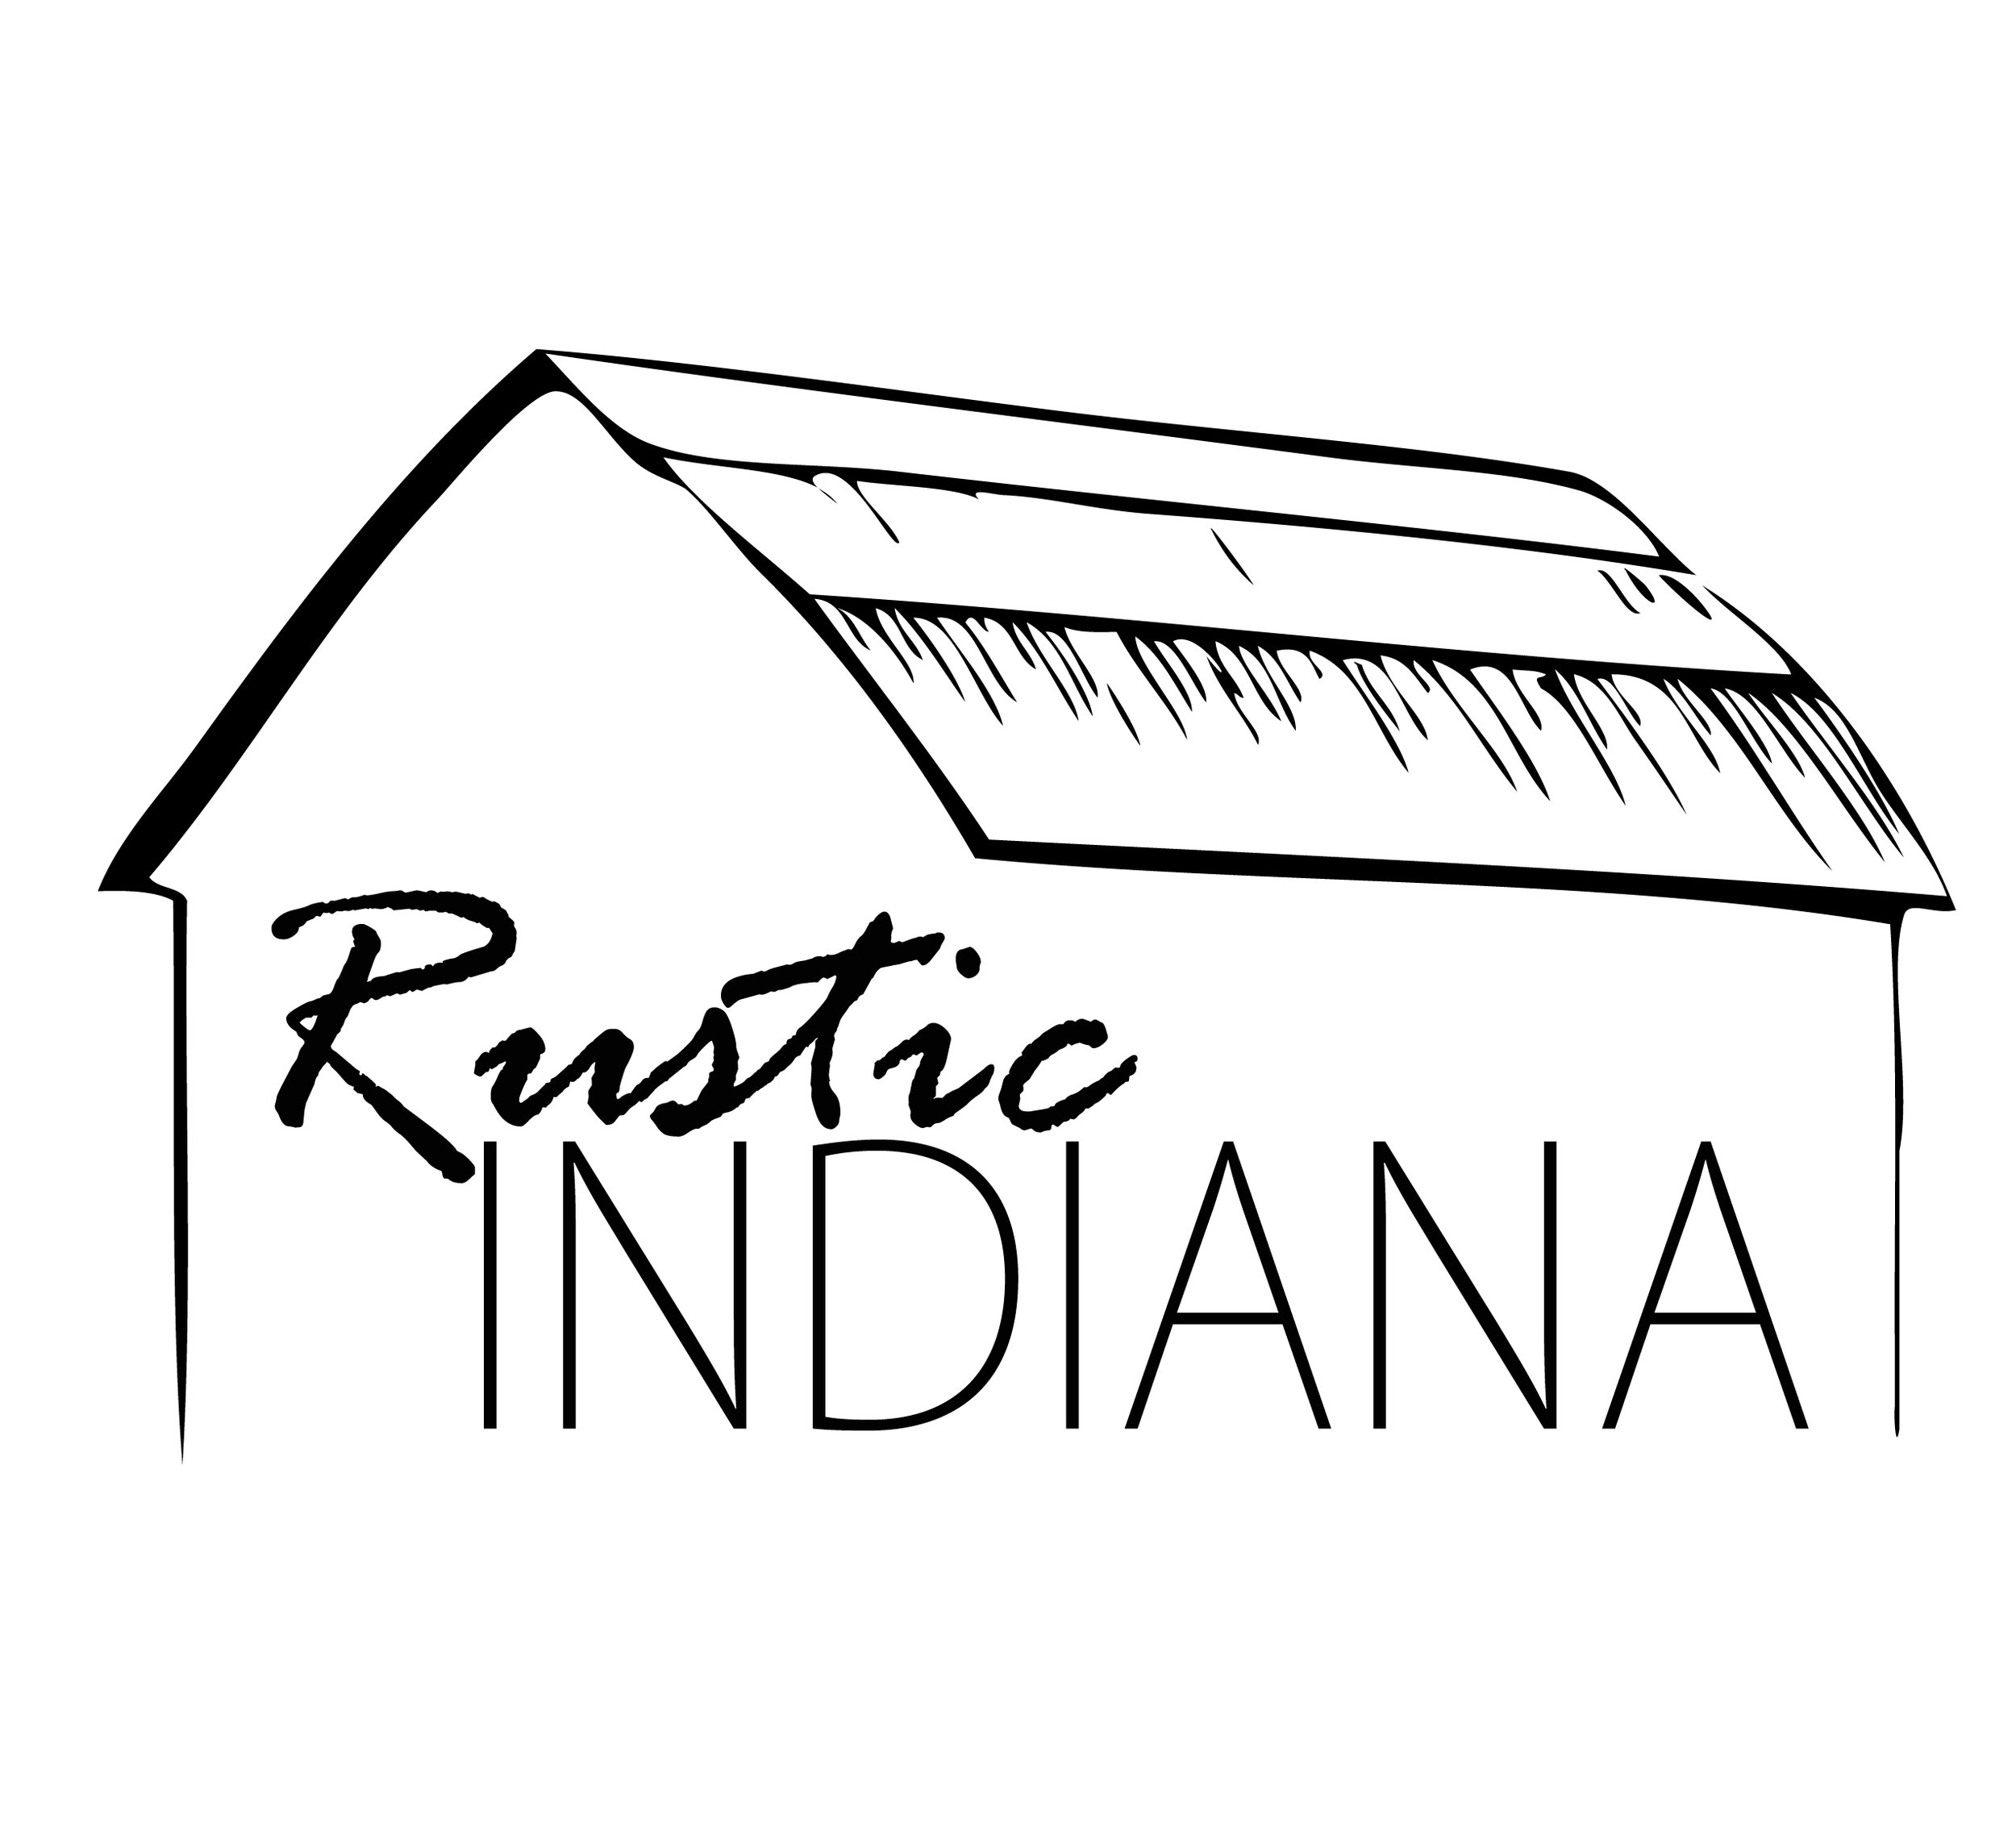 - Joe DePra has a kindred passion for woodwork & the preservation of premium aged barn timber. Despite the rising value of barn wood, many historic barns in the Great Midwest are being demolished or burned down altogether. After observing this carelessness, Joe became determined to reclaim these exceptionally beautiful & time proven materials to give them new life. Rustic Indiana was born. We preserve the wood from taking down these old barns, supply reclaimed barn wood to others who wish to repurpose and give it new life, and build custom furniture and home renovation projects using this beautiful salvaged barn wood. Please check out the Gallery page for examples of the custom work we offer. Contact us for your next project!